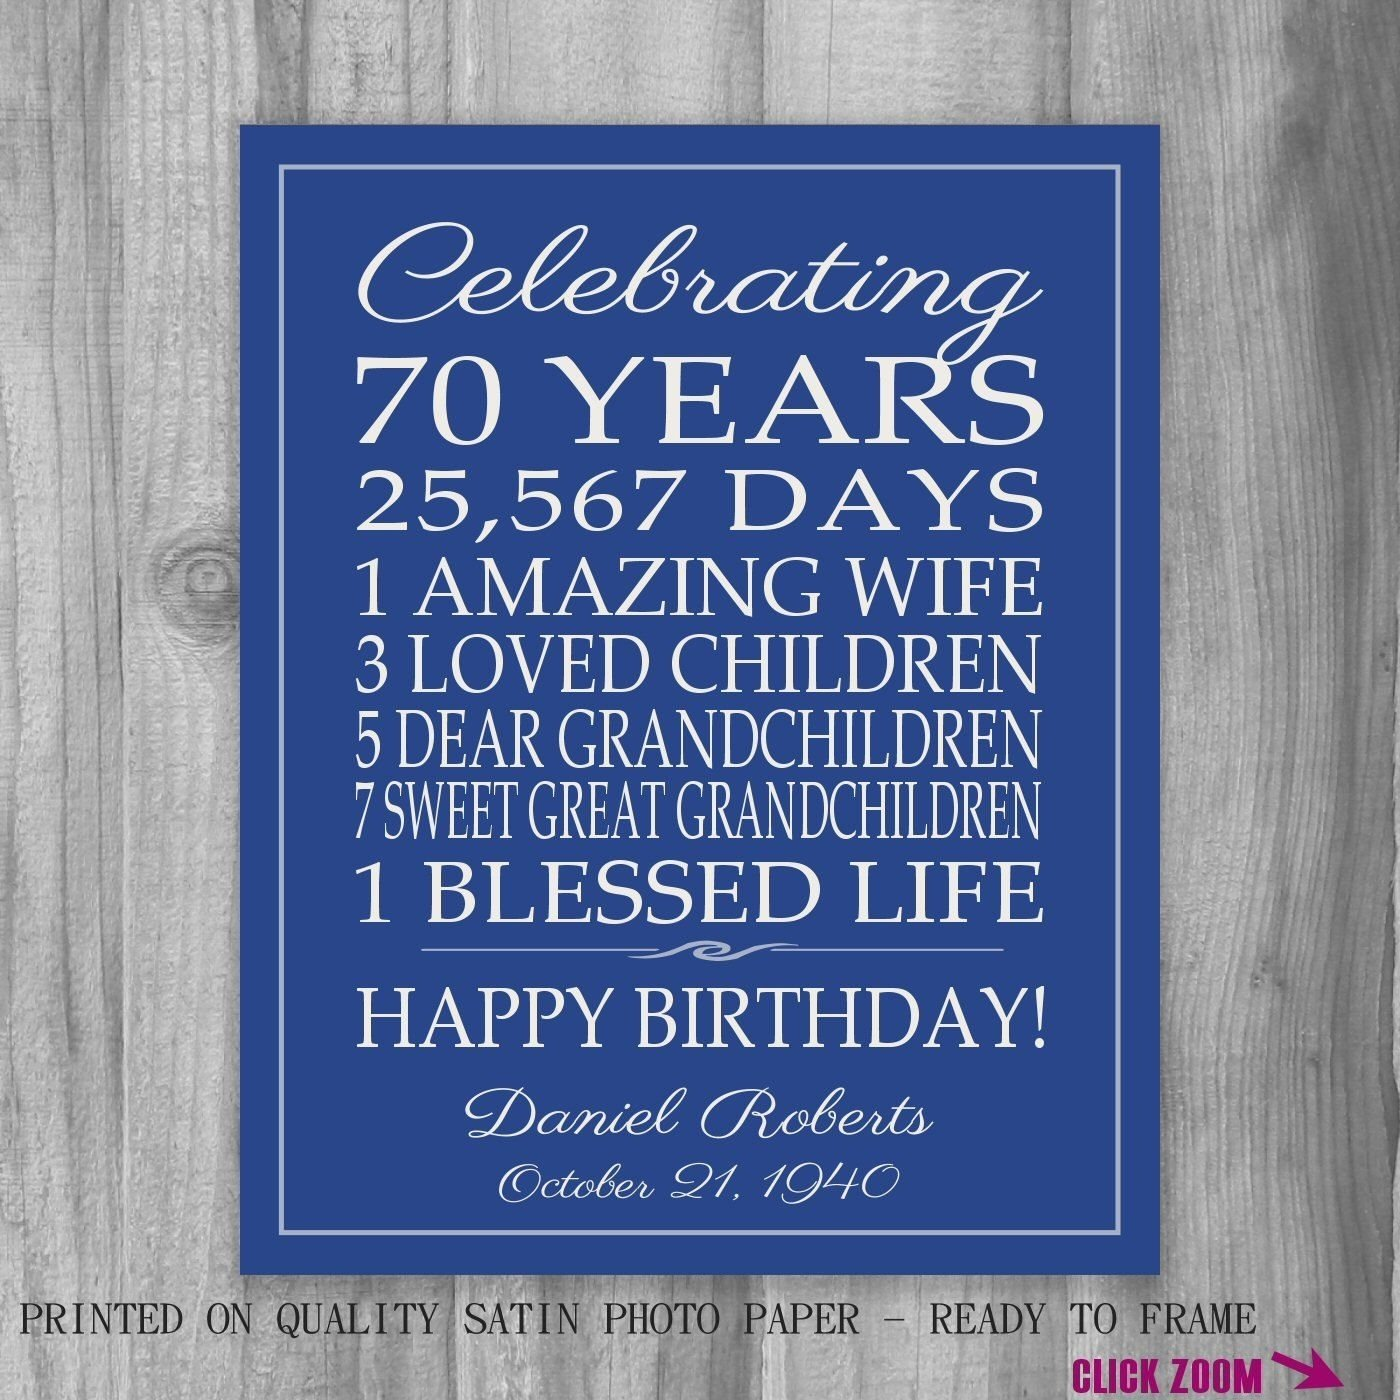 10 Stylish 70Th Birthday Ideas For Dad 70th birthday gift birthday sign canvas personalized gift for dad 1 2020